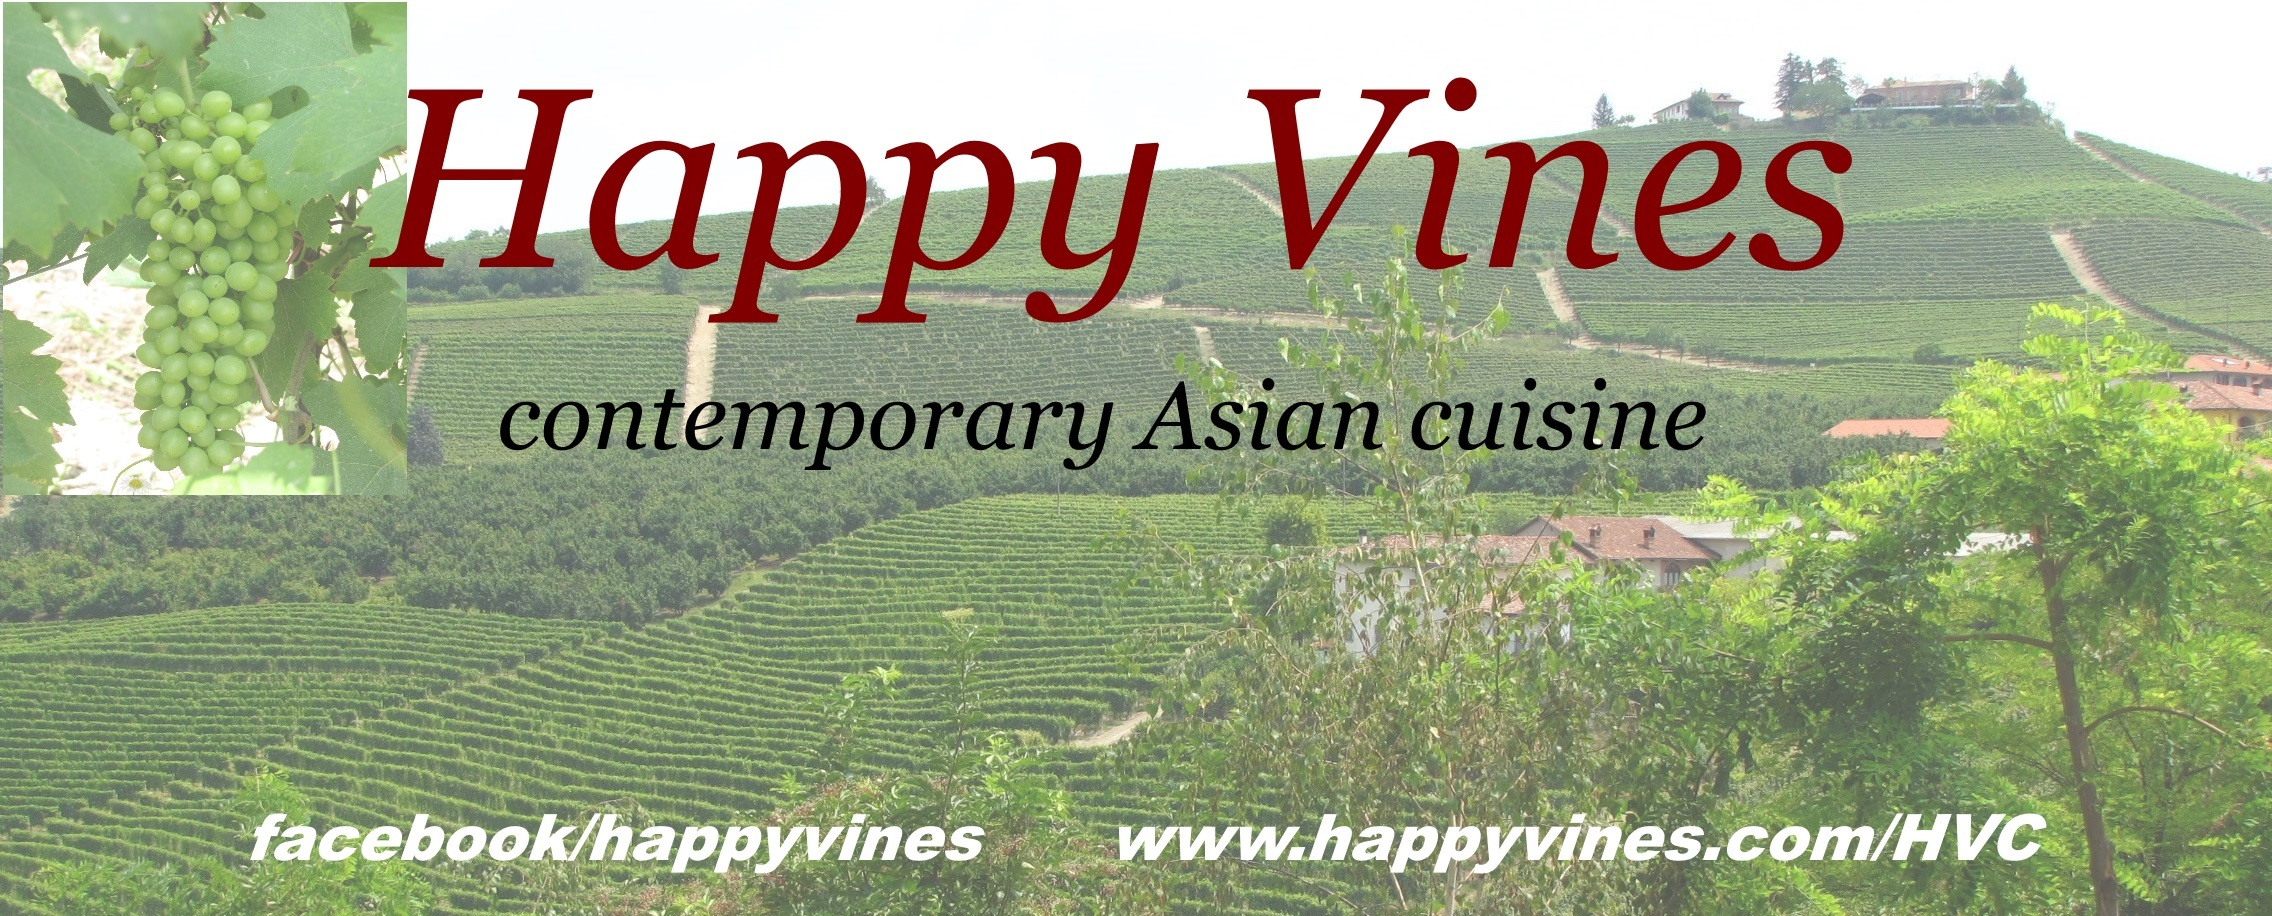 Happy Vines logo